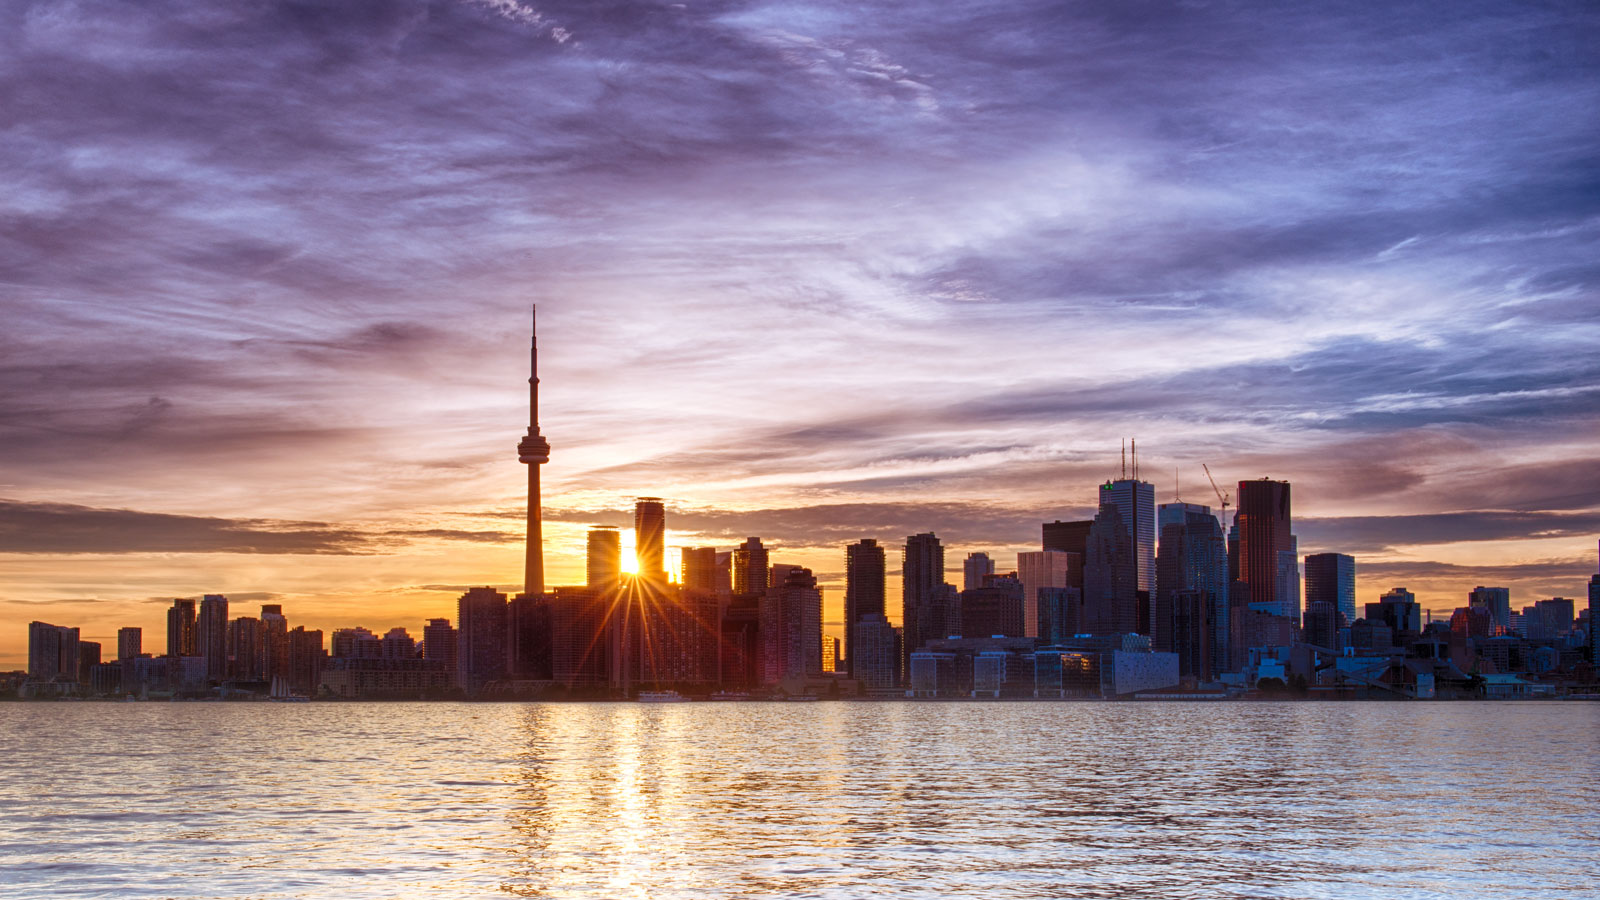 The sun sets behind the distinctive skyline of Toronto cityscape landscape photography